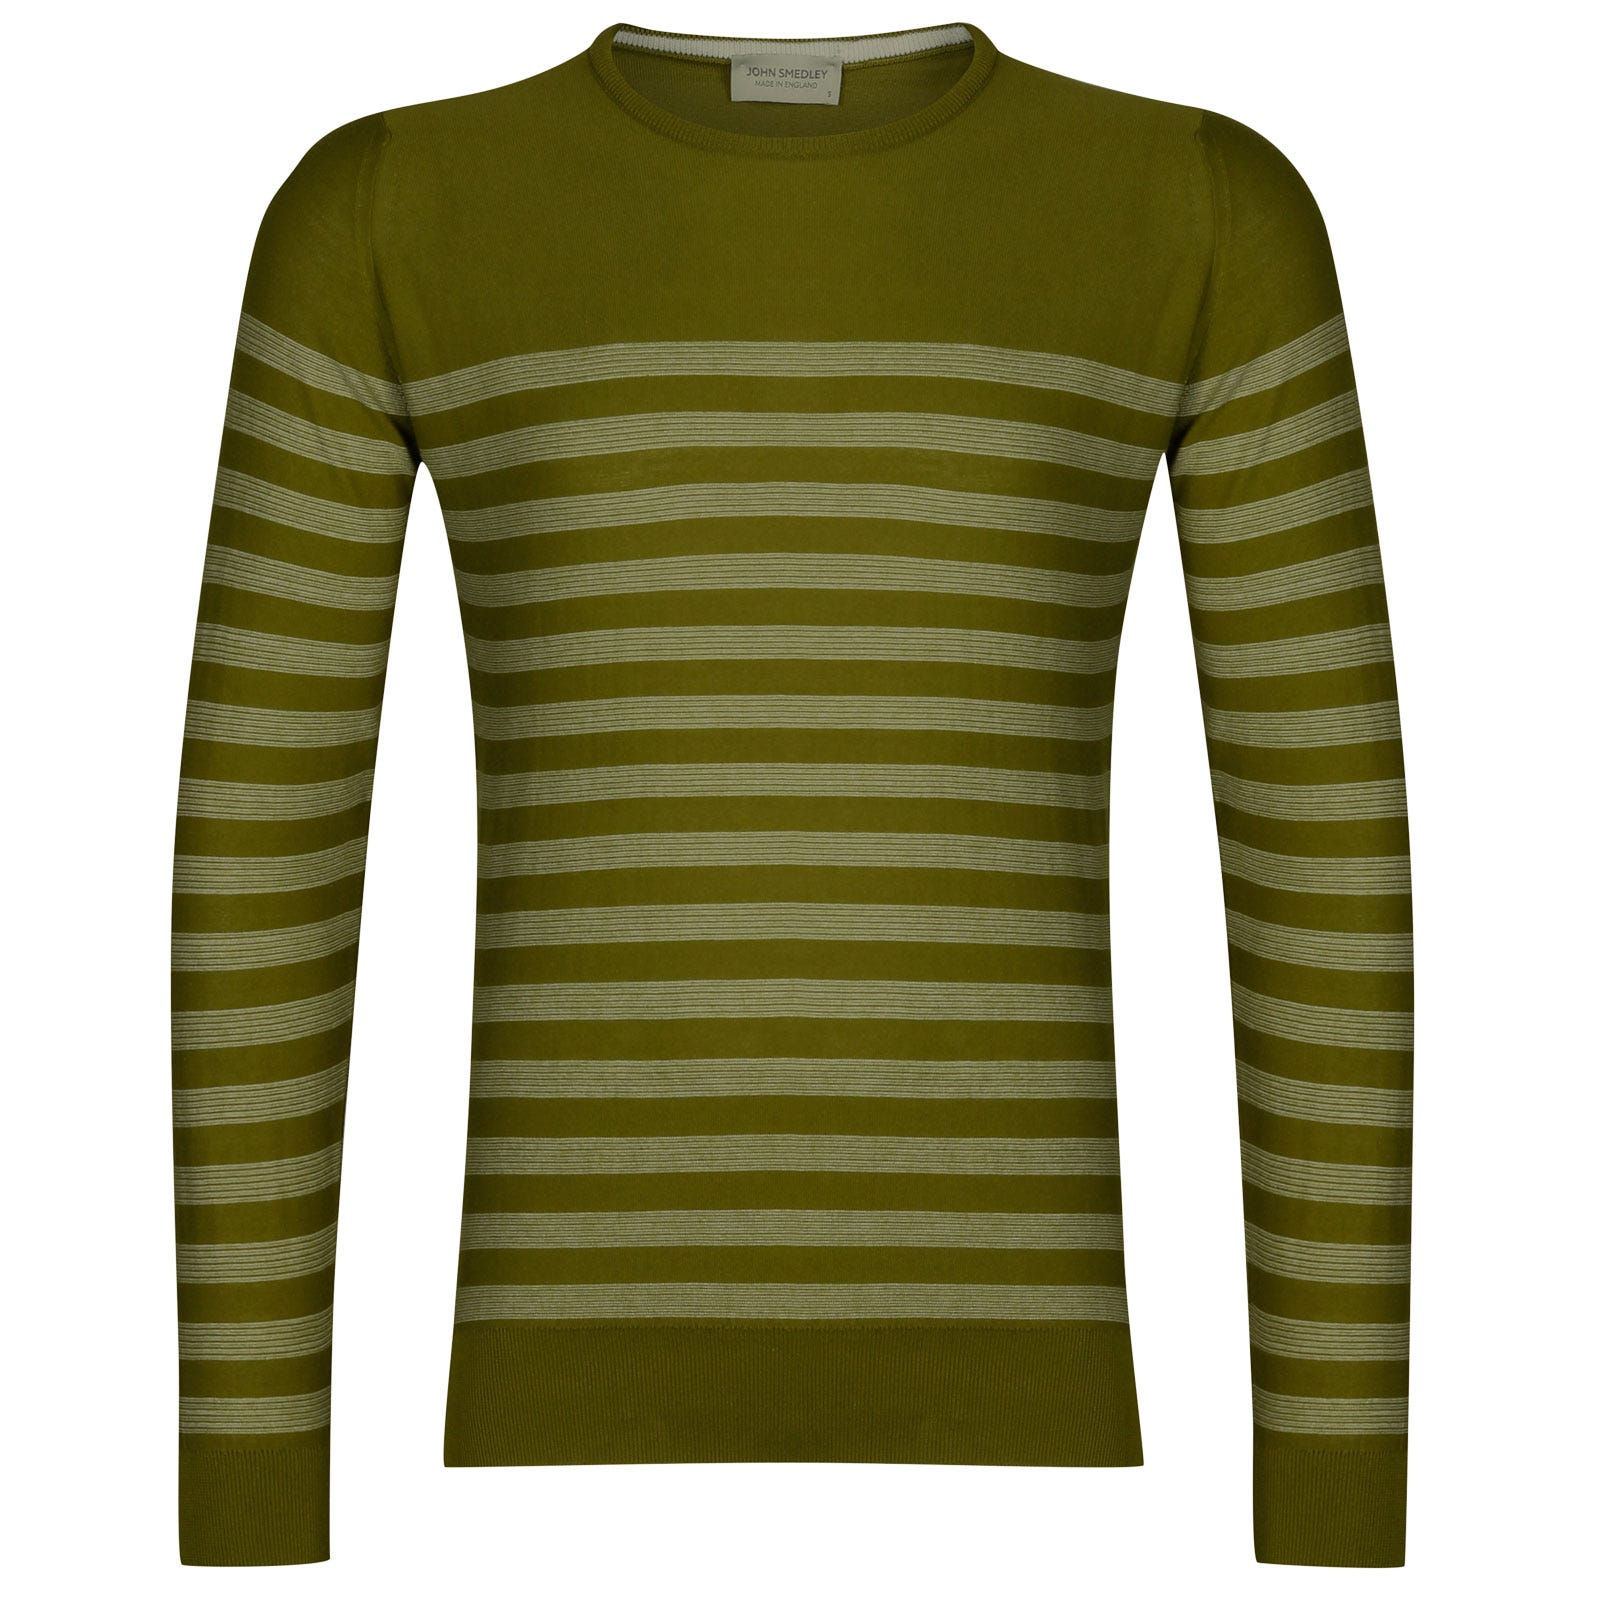 John Smedley rubra Sea Island Cotton Sweater in Lumsdale Green/White-S